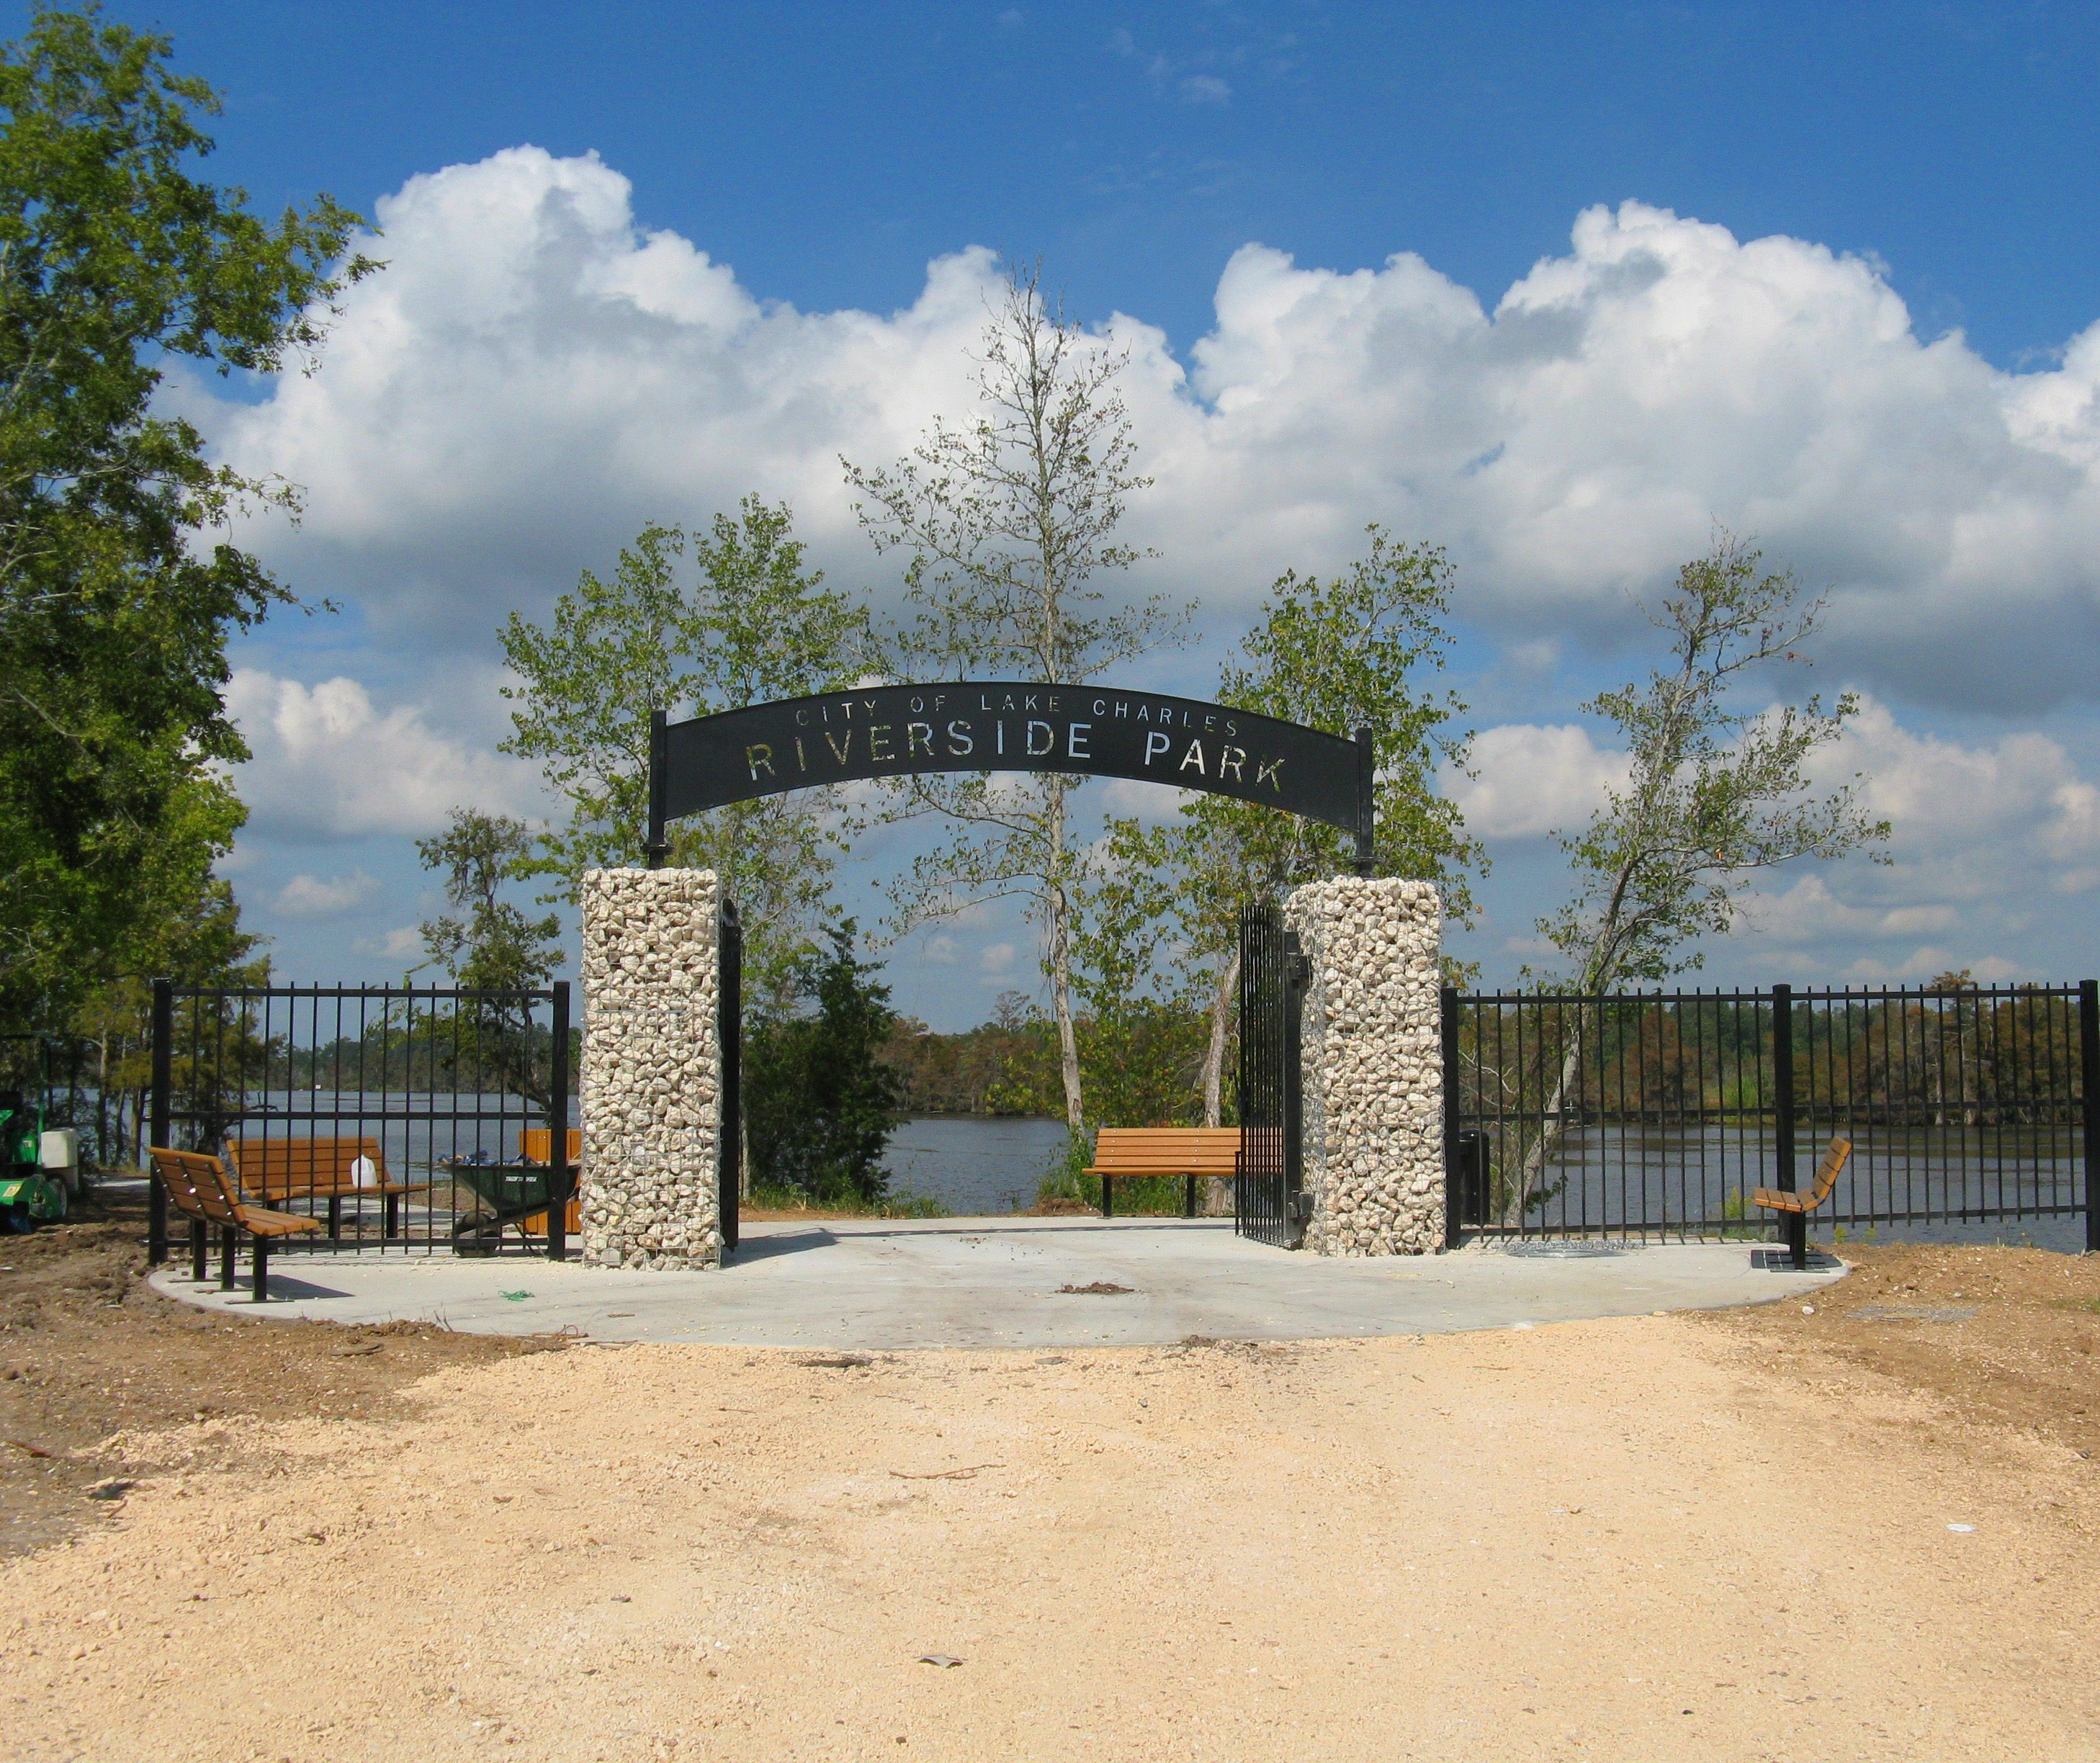 Riverside Park Features Nature Trails Fishing Piers Pavilions Playgound Amenities And Boat Launch Fitzen Riverside Park Pier Fishing Parks And Recreation